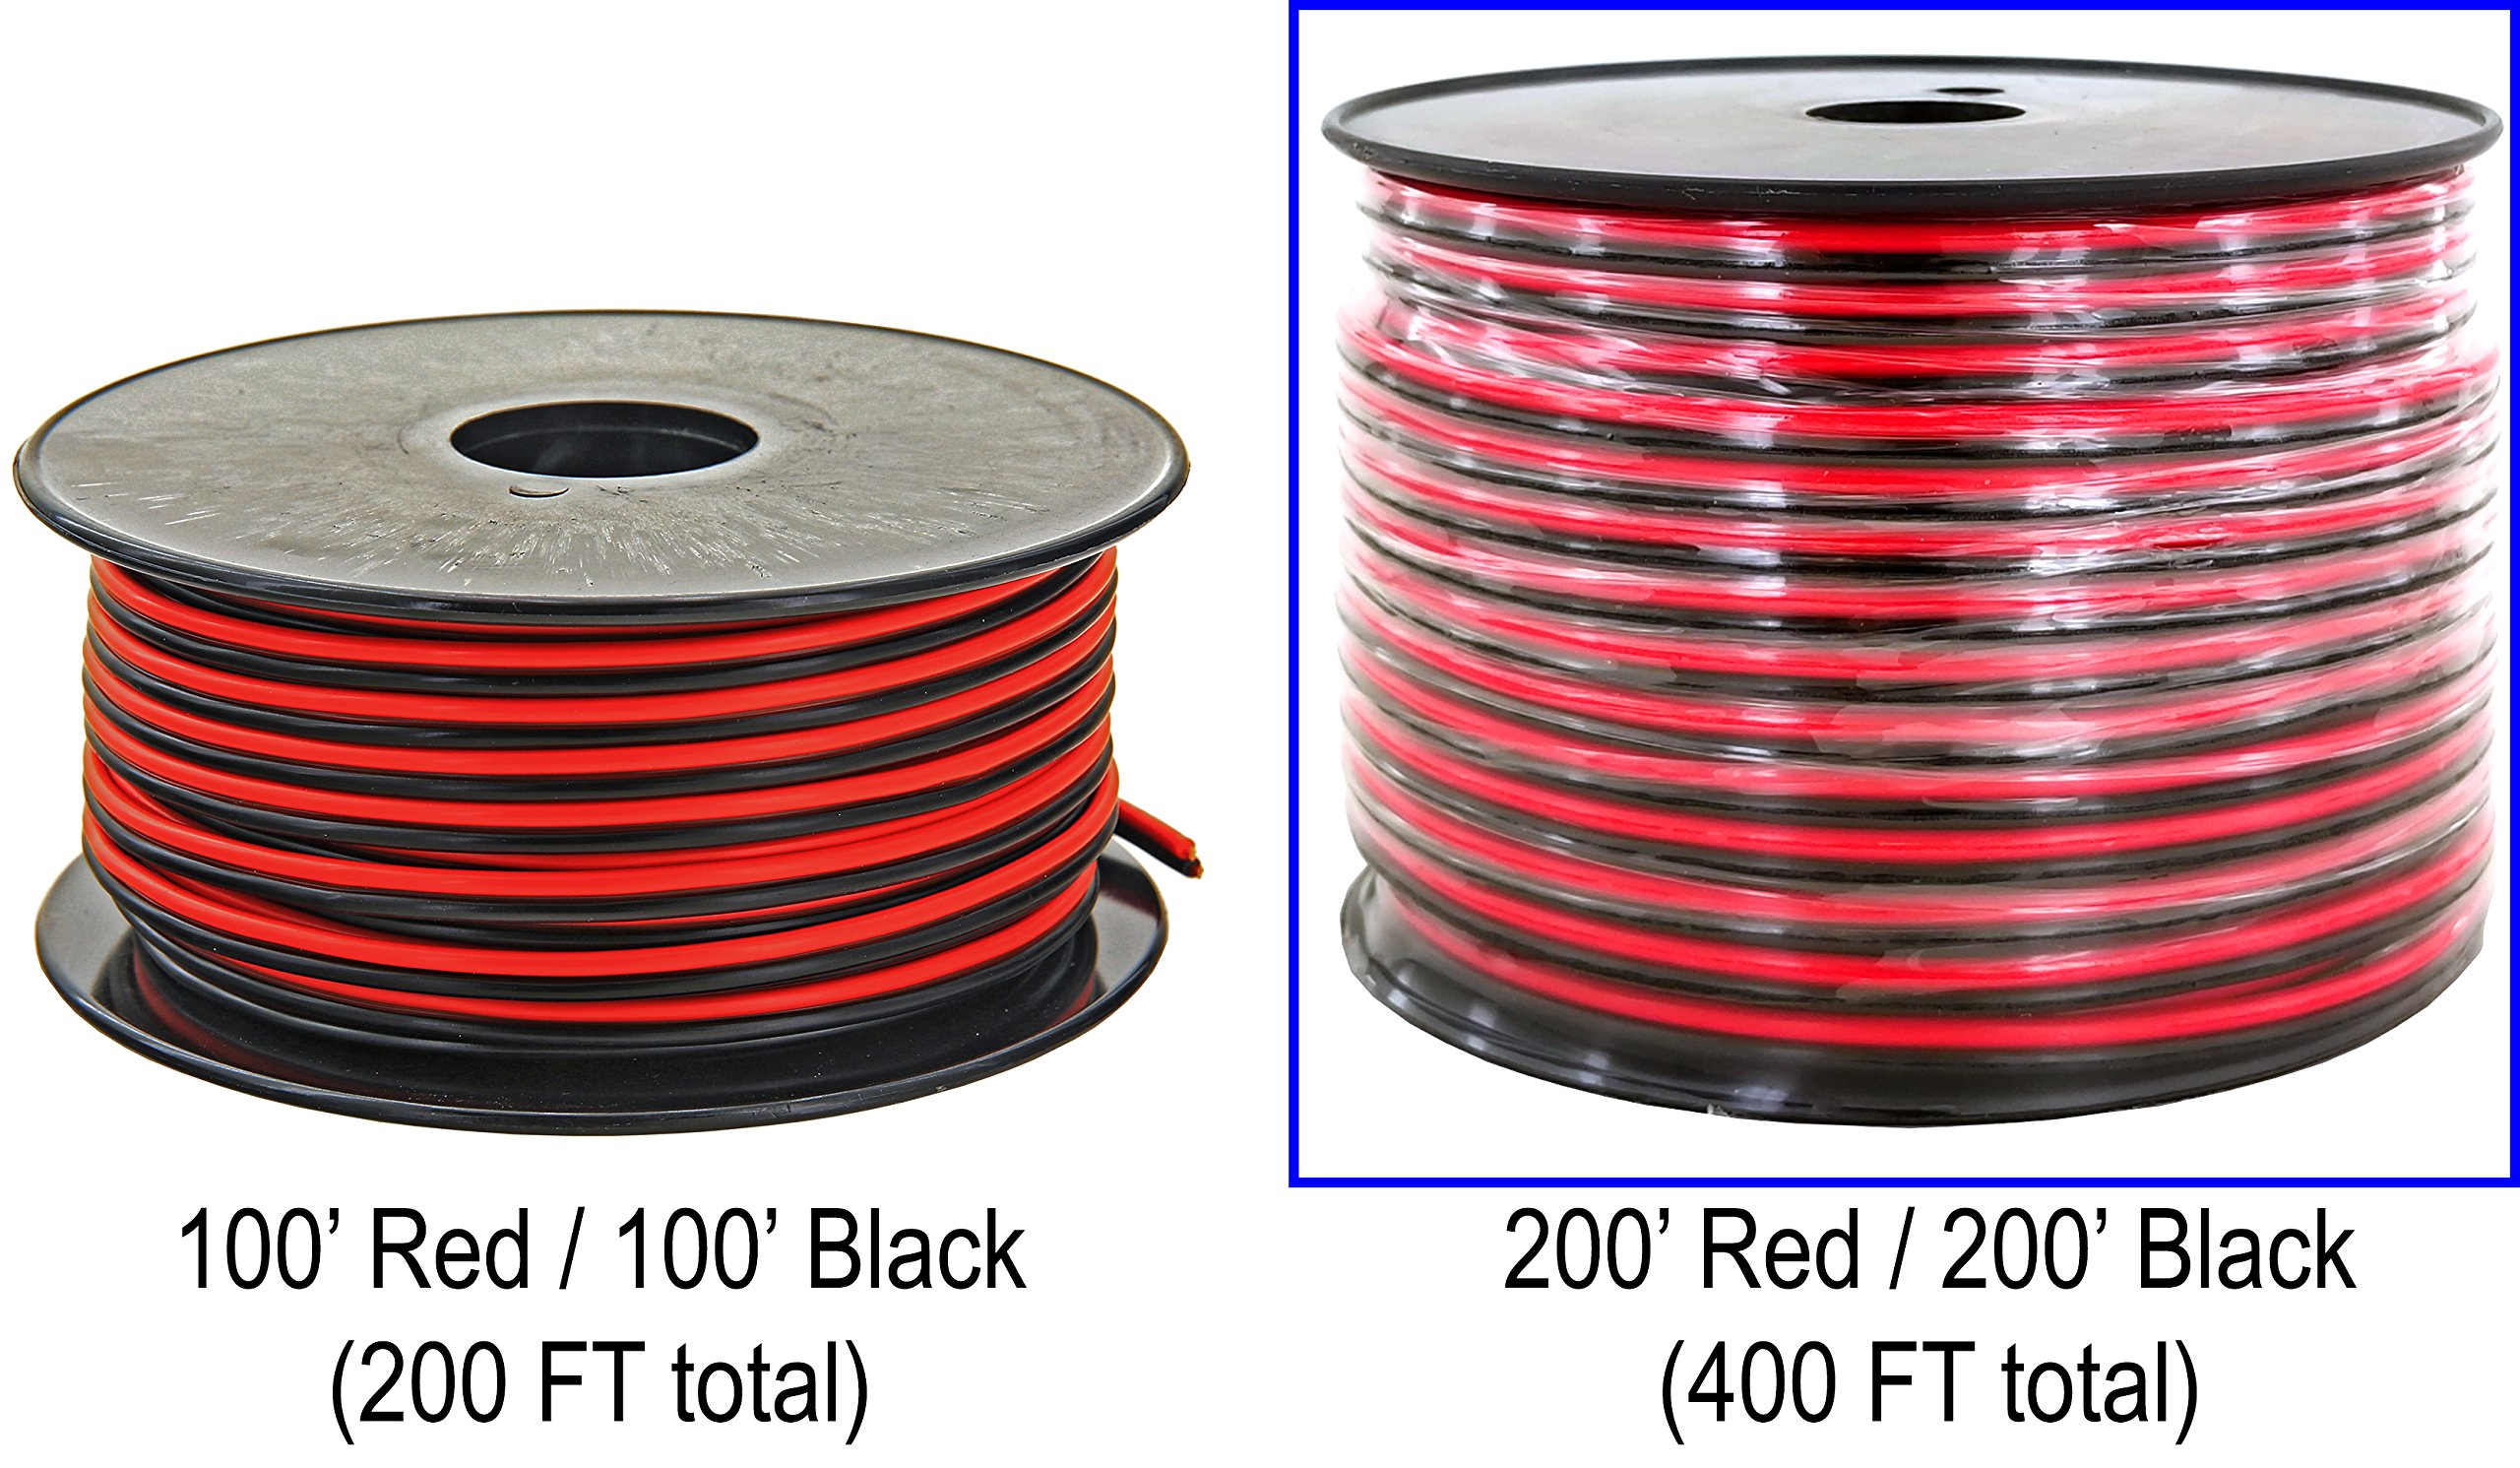 GS Power 18 Gauge (True American Wire Ga) 99.9% Oxygen Free Copper OFC, 200' Red/200' Black (400 FT Total) 2 Conductor Bonded Zip Cord Power/Speaker Electrical Cable for Car, Audio, Home Theater